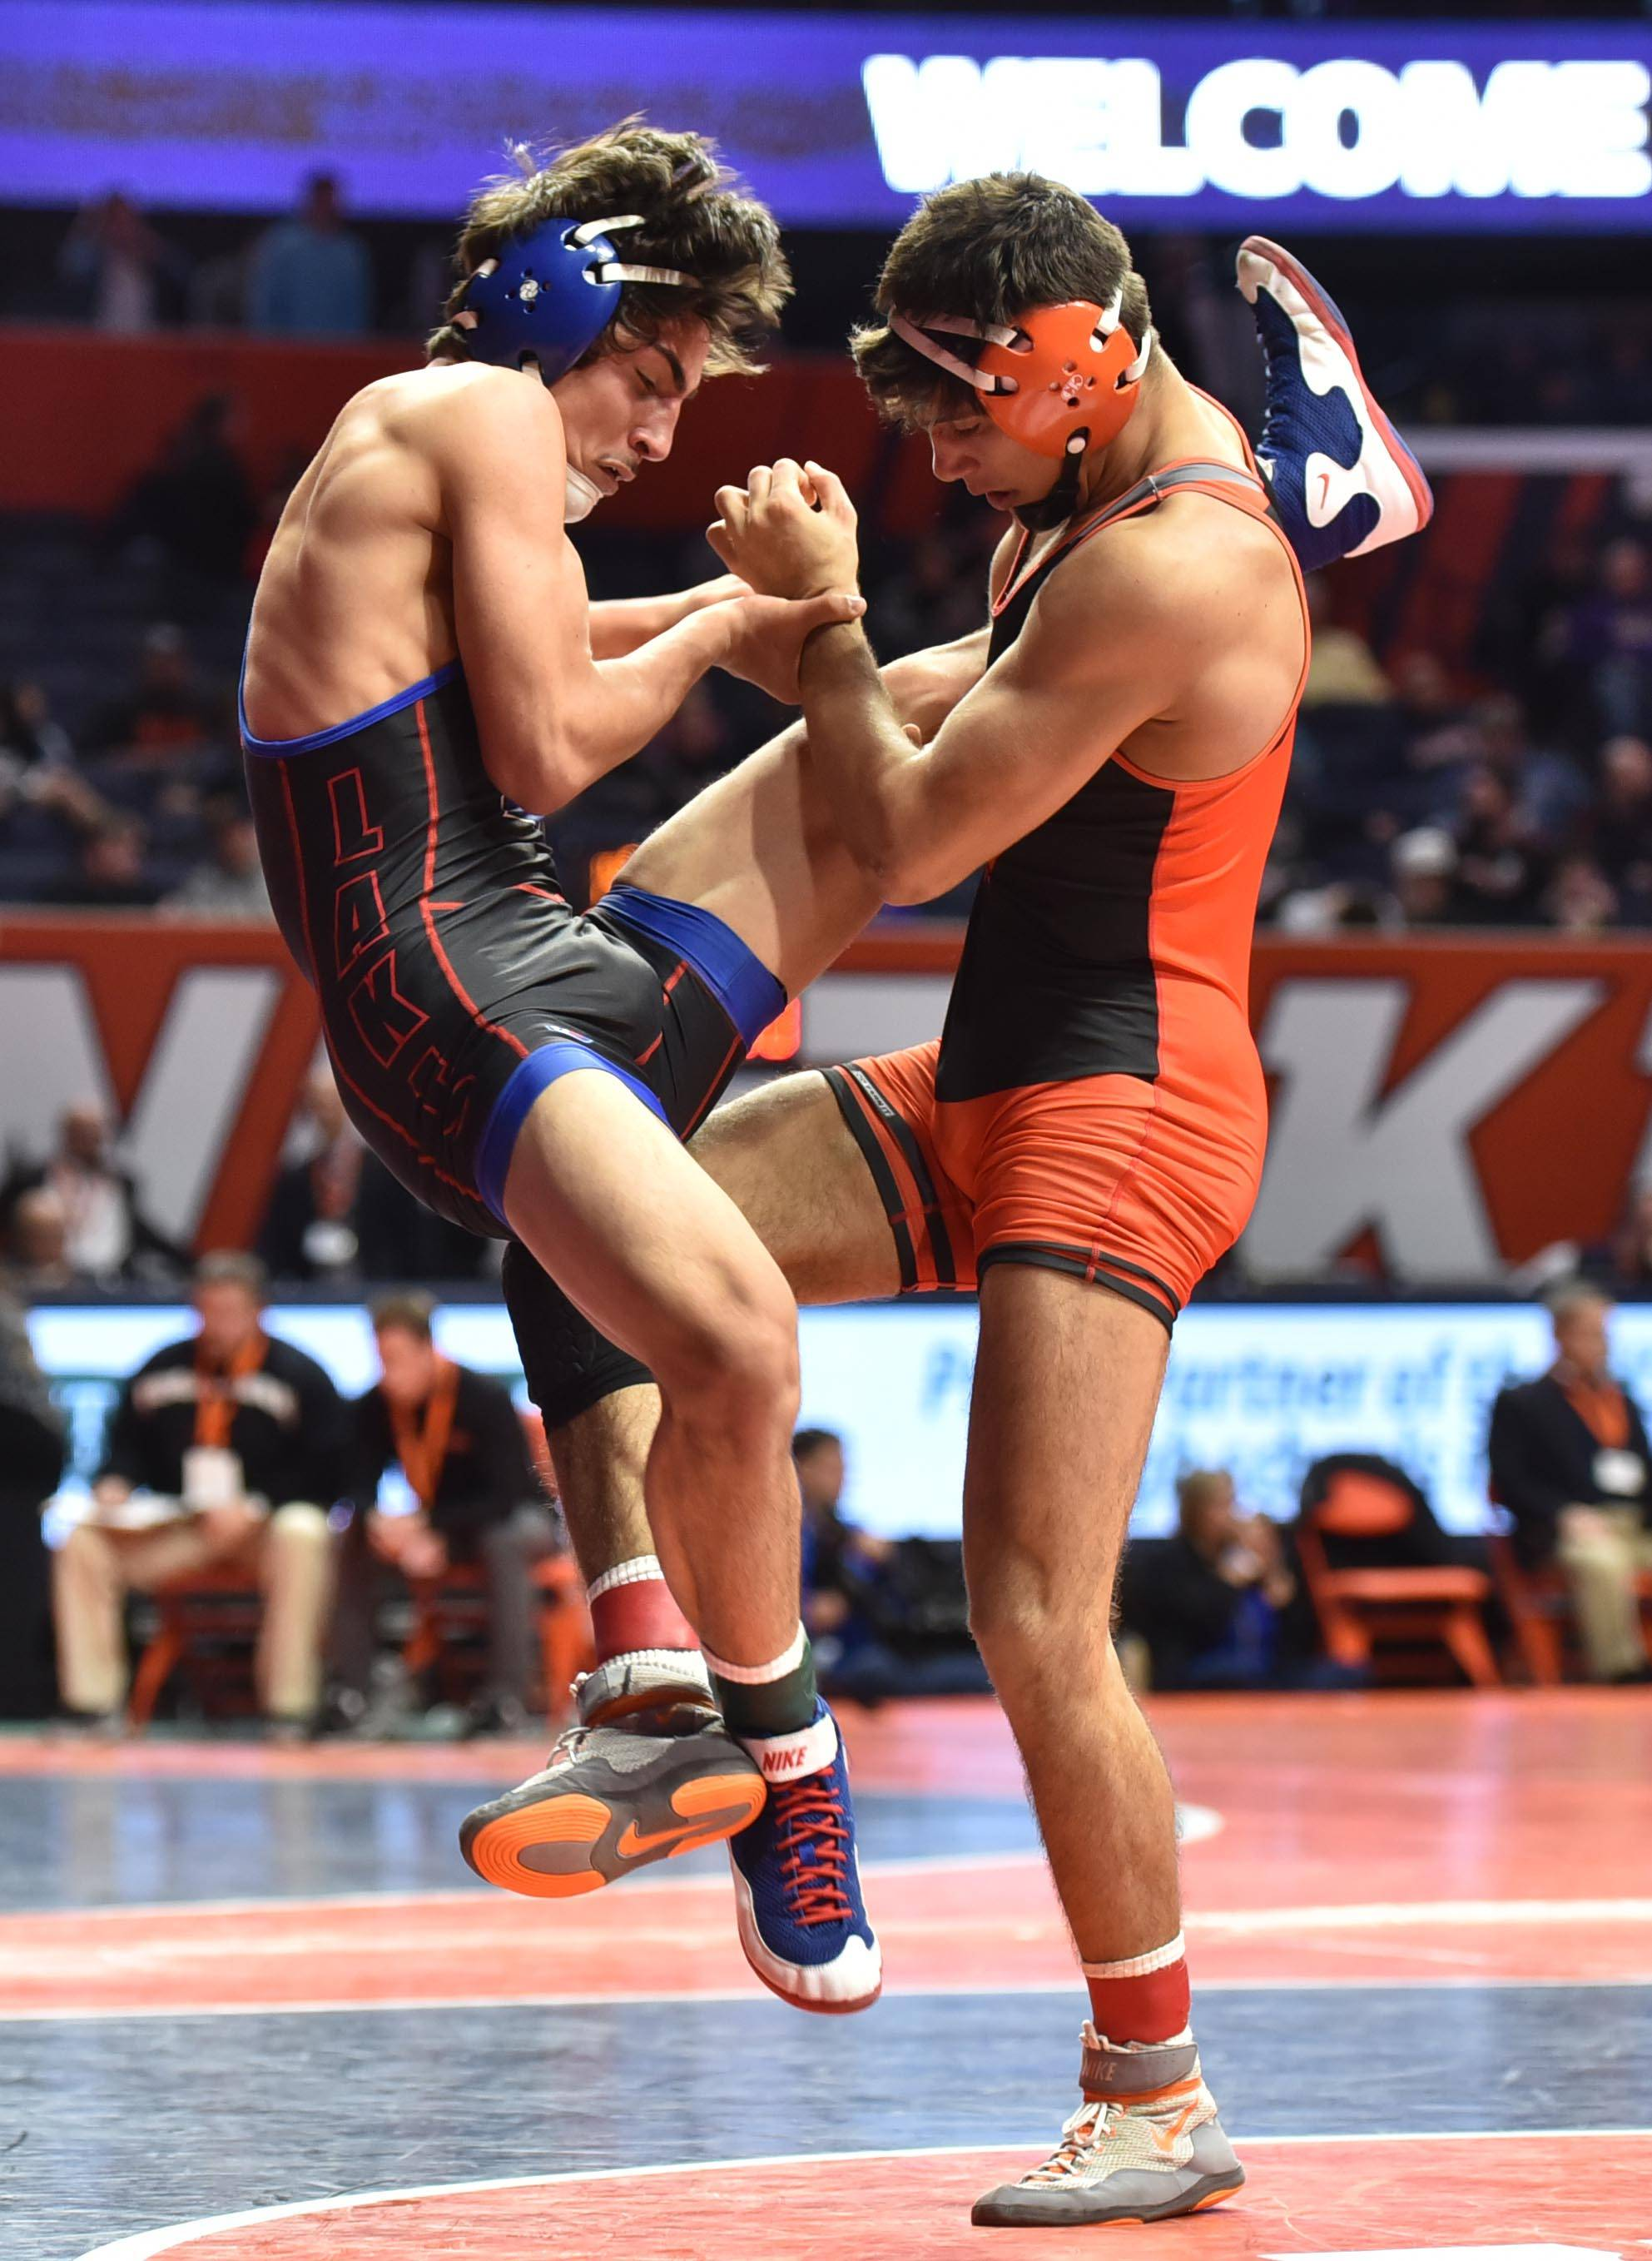 Lakes High School's Xavian Girona is tripped by Washington's Kyle Goin in the Class 2A 152 -pound quarterfinal bout Friday at the IHSA state wrestling tournament preliminaries.